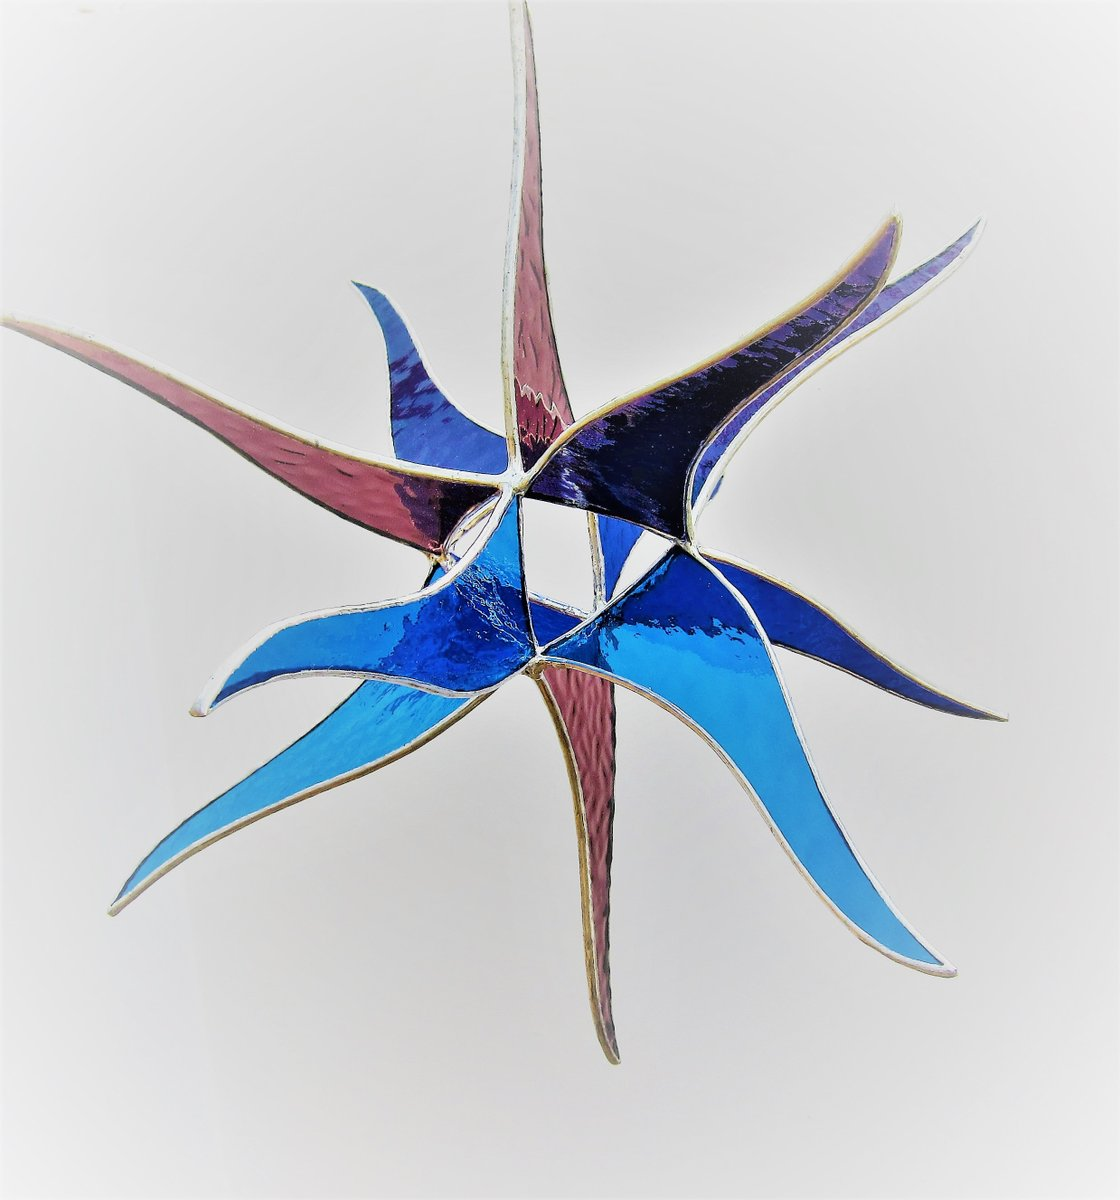 Just created for my #etsy shop: Stained Glass suncatcher, window hanging 3D Star sculpture in purple, grape,cobalt blue and light blue colors. 14 inches in diameter  #housewares #outdoor #gardendecor #blue #purple #3dglass